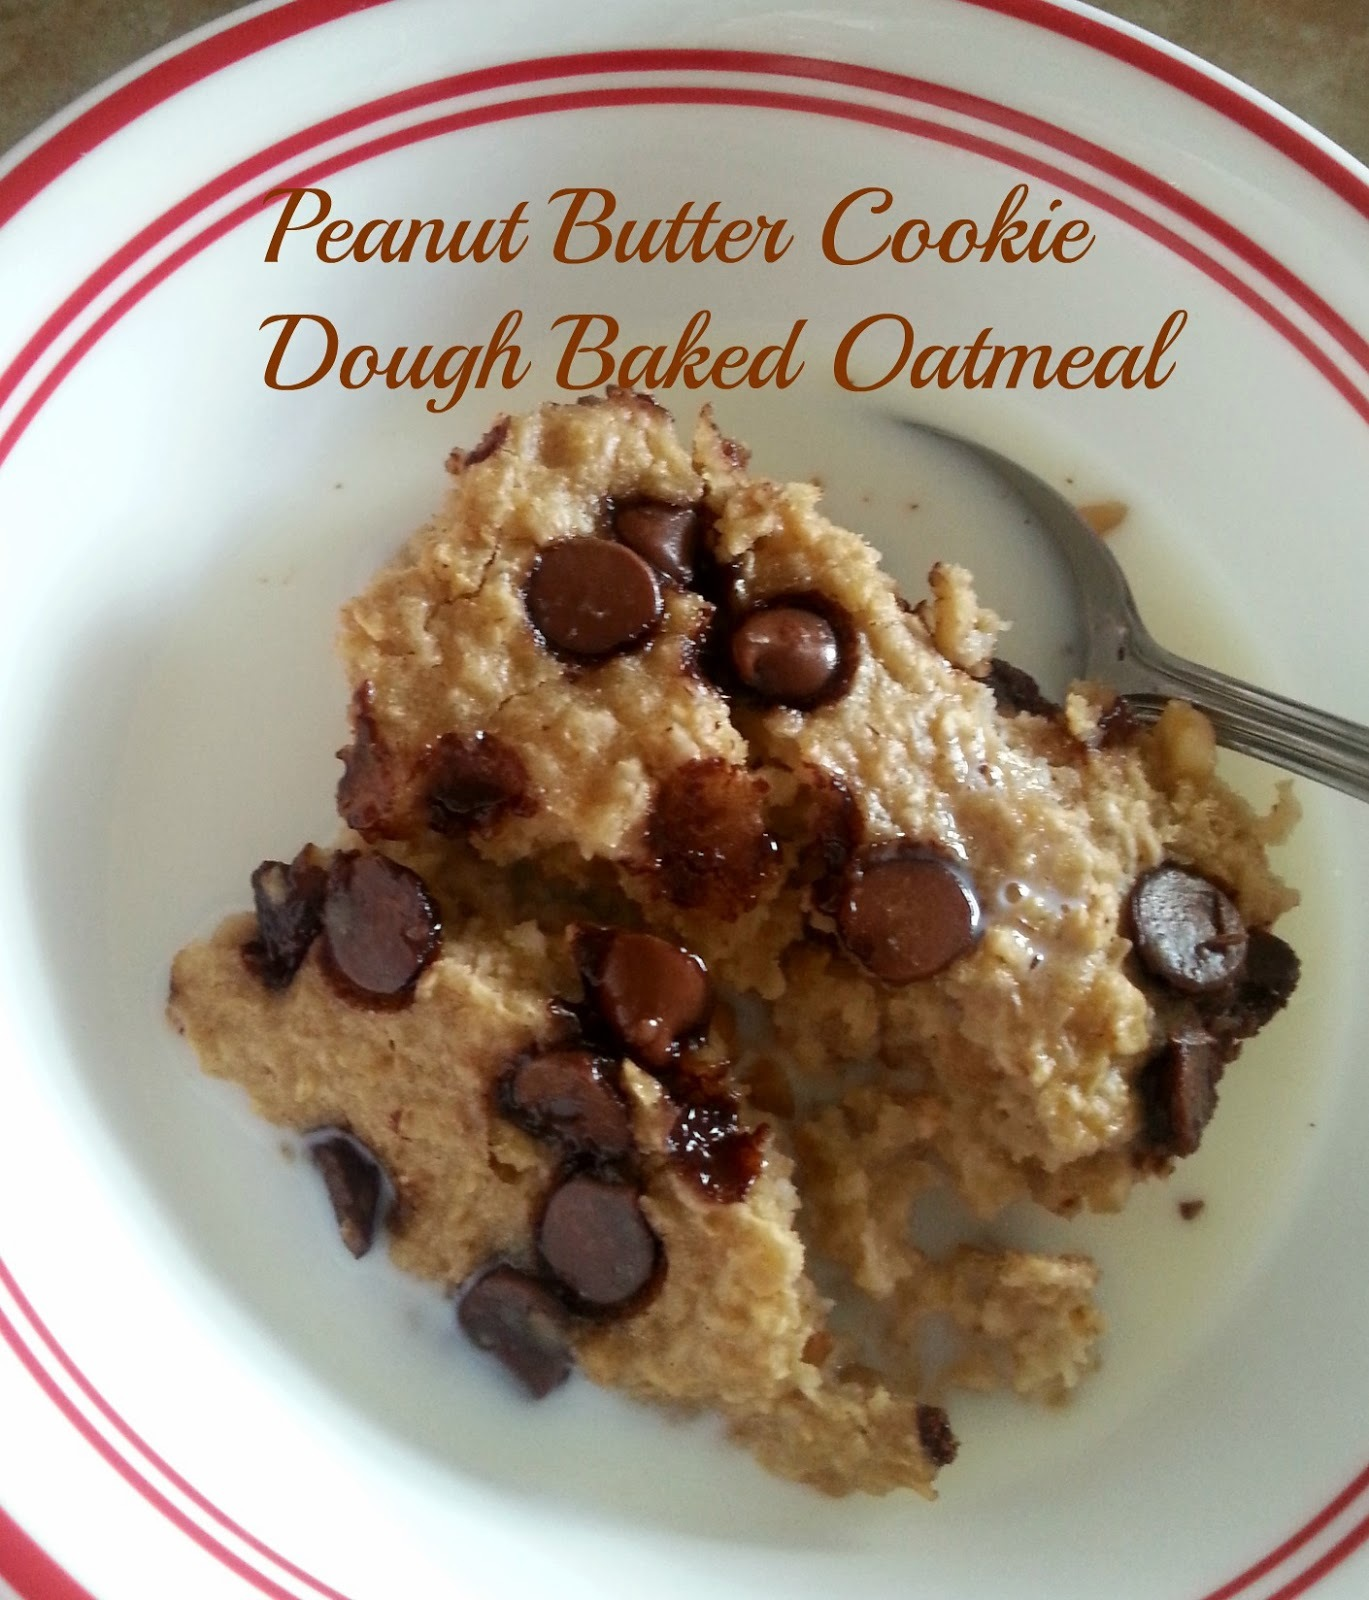 Peanut Butter Cookie Dough Baked Oatmeal